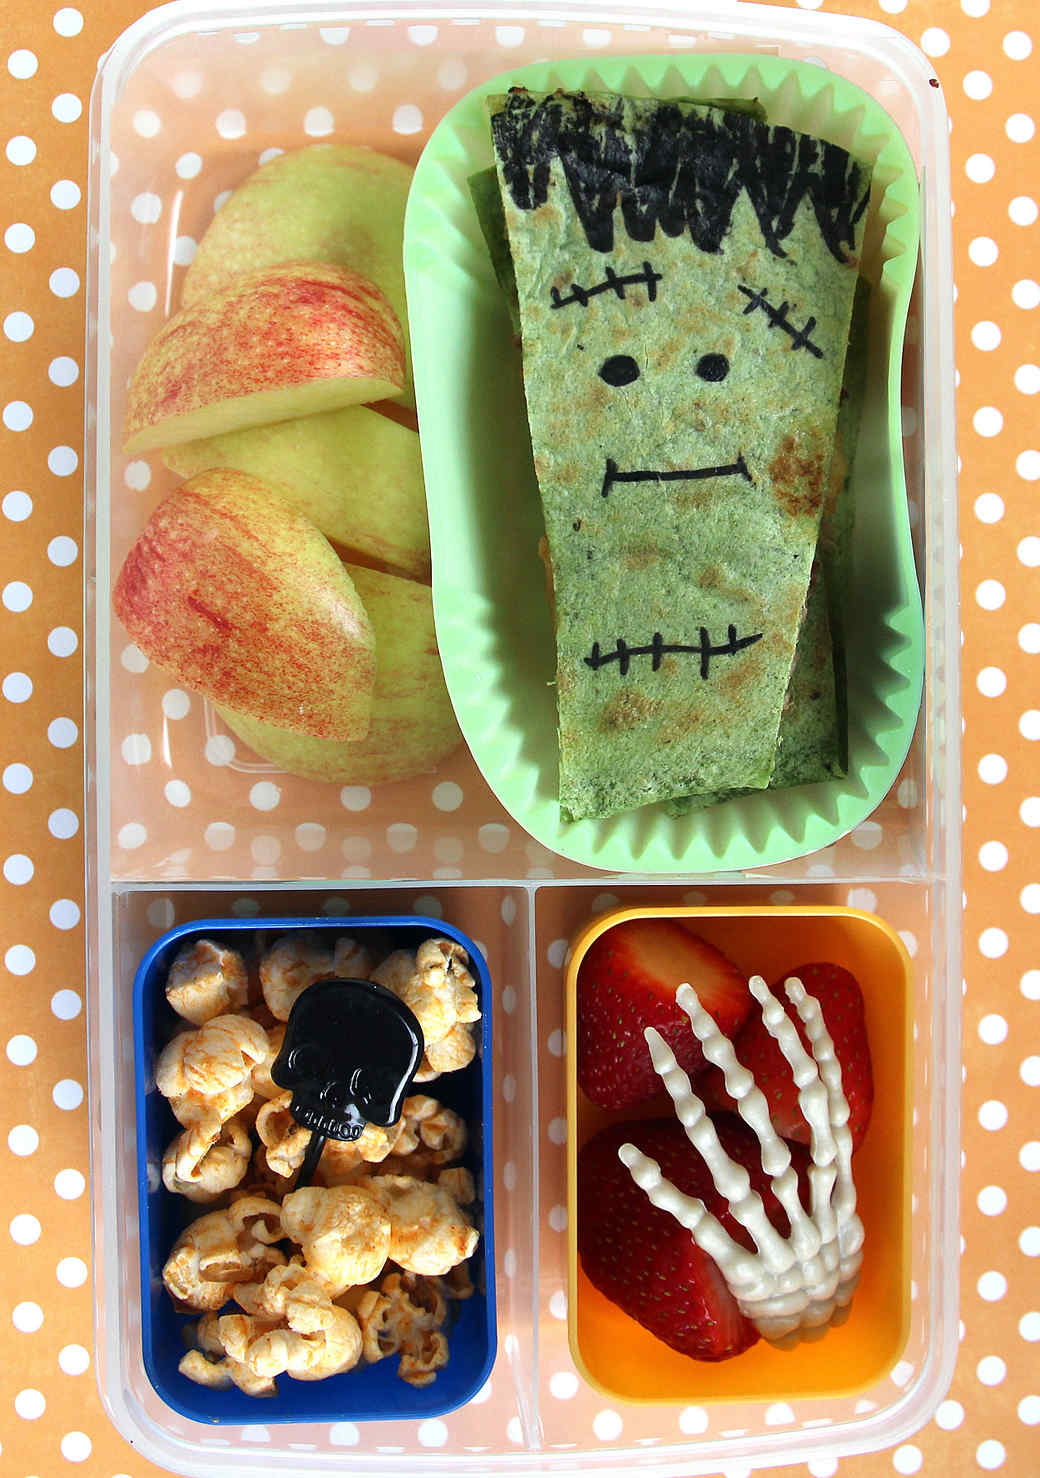 10 Super-Scary But Also Very Cute Bento Boxes for Halloween